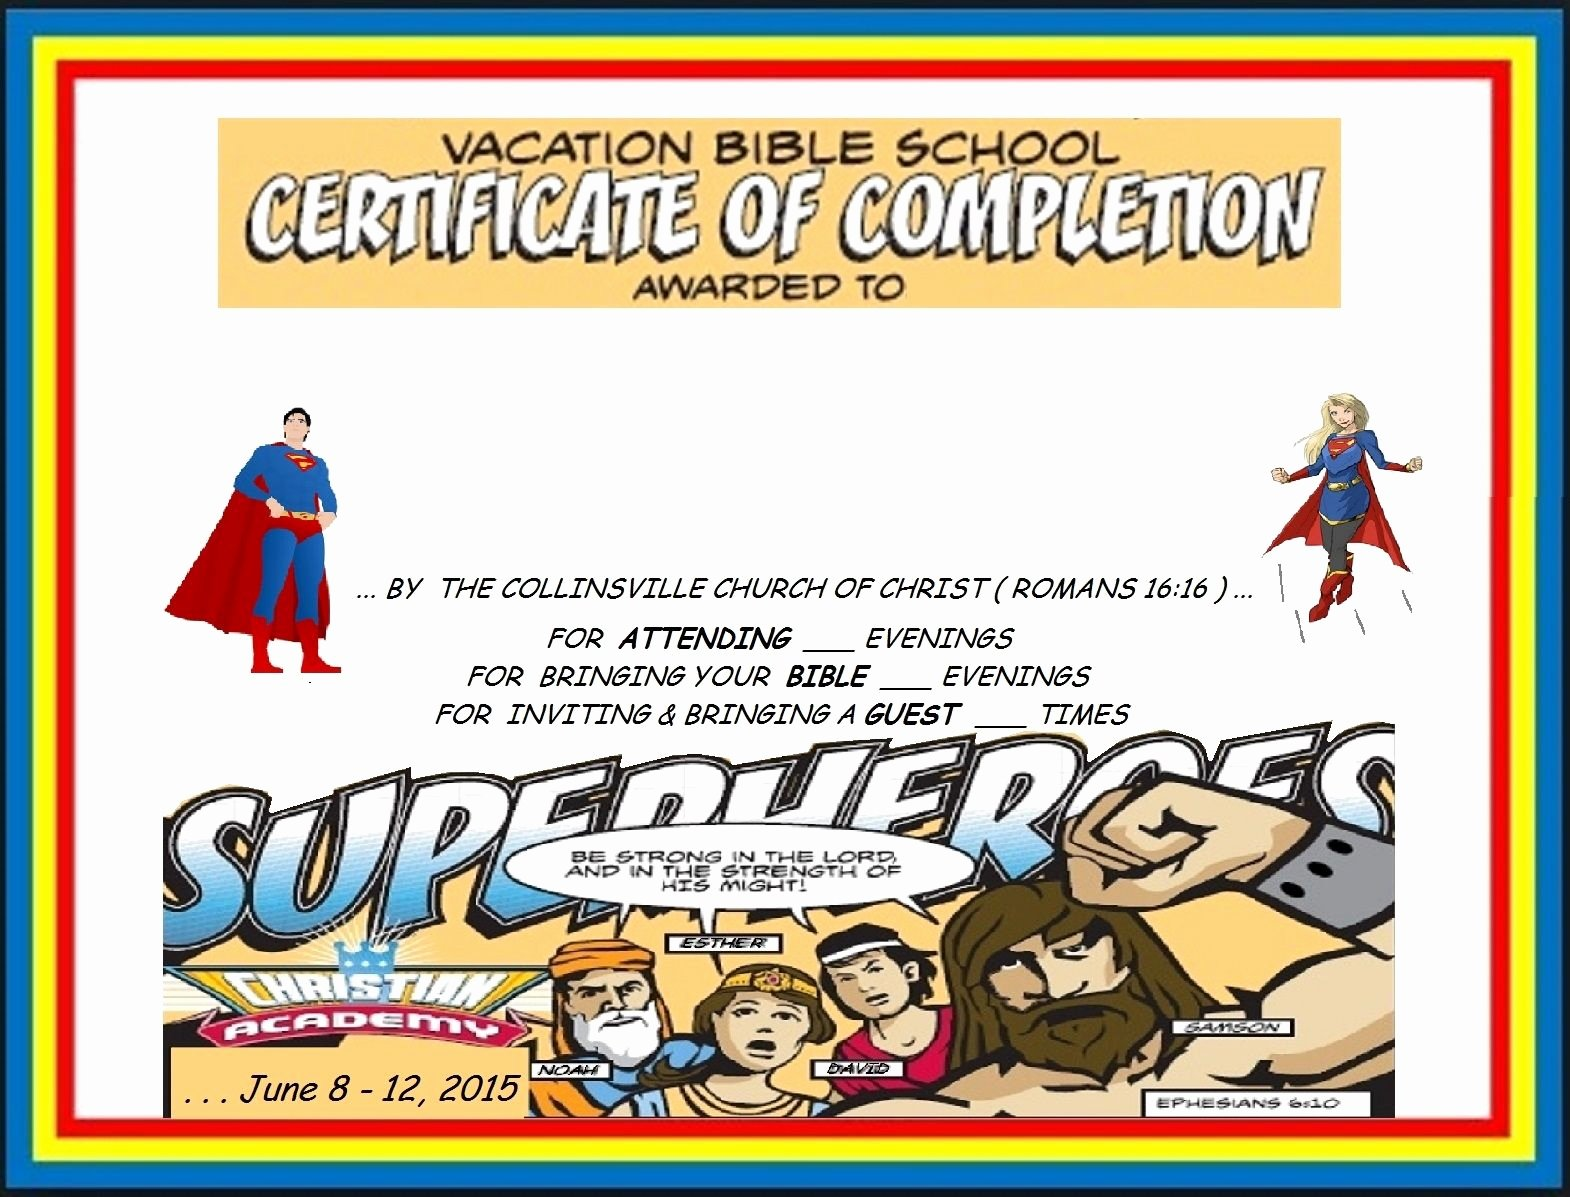 Vacation Bible School Certificates Printable Awesome Vbs Certificate Superhero Red Capes